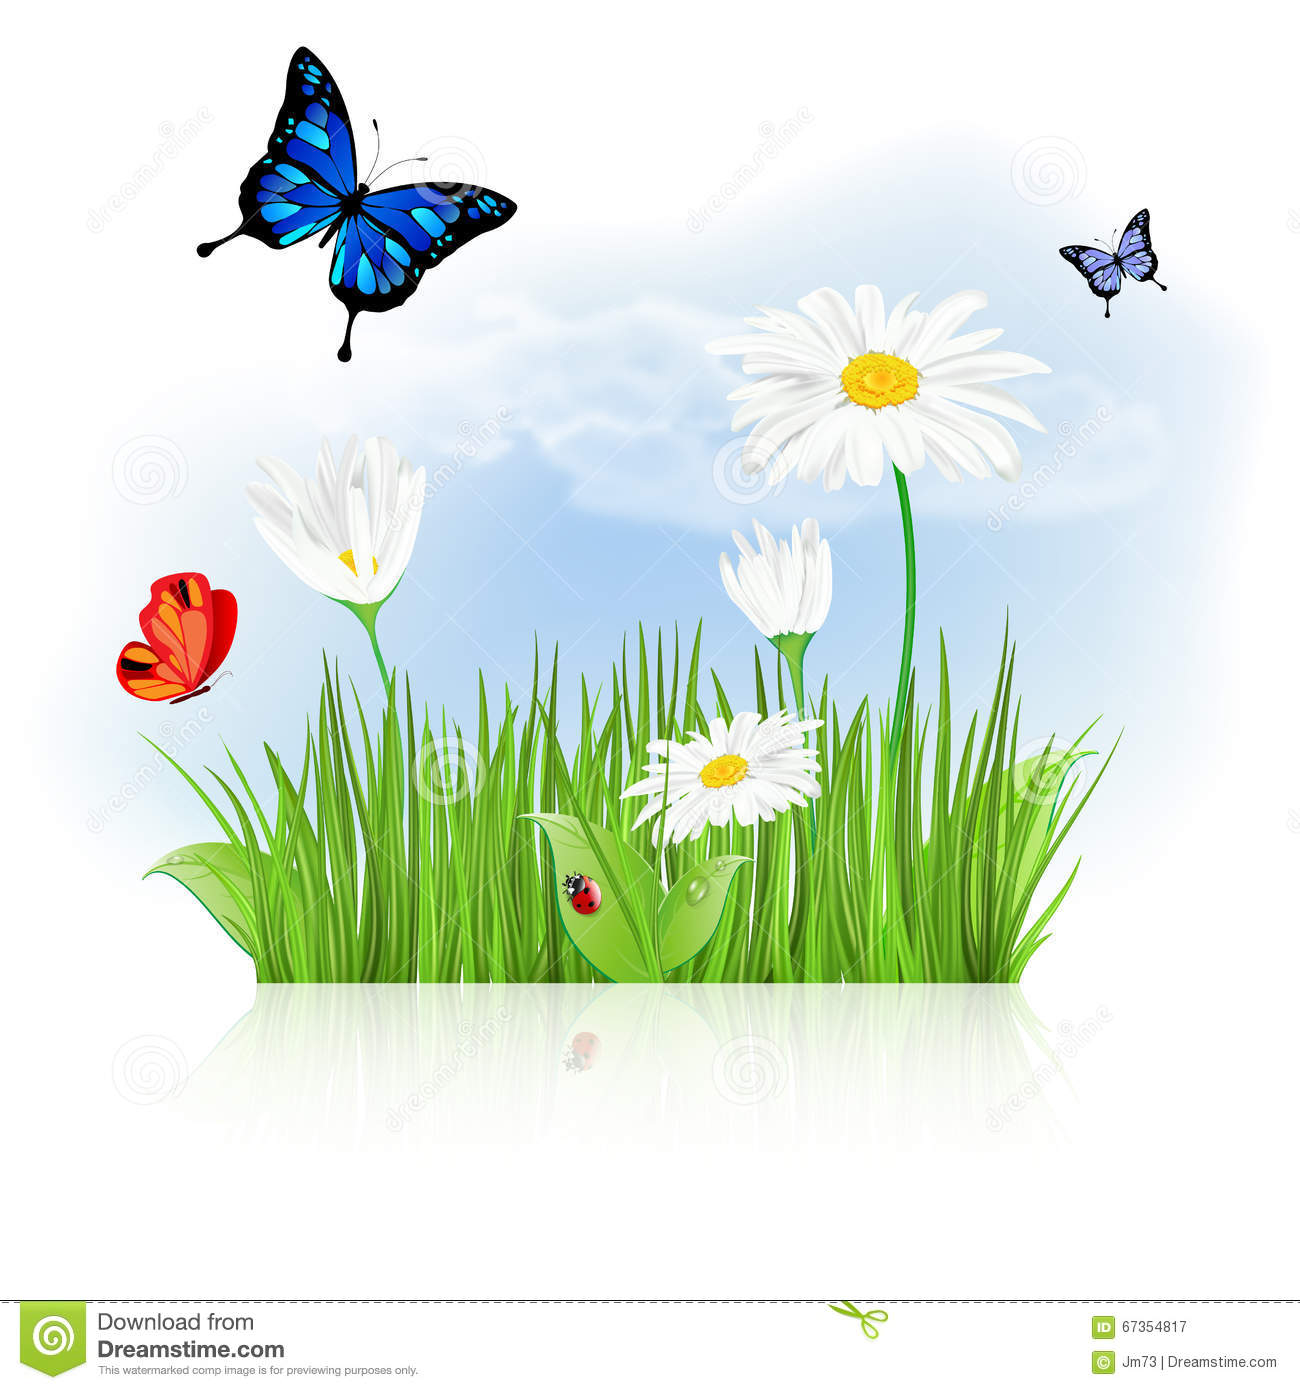 Flowers and grass clipart clipart library stock Nature Background With Grass, Flowers And Butterflies Stock Vector ... clipart library stock